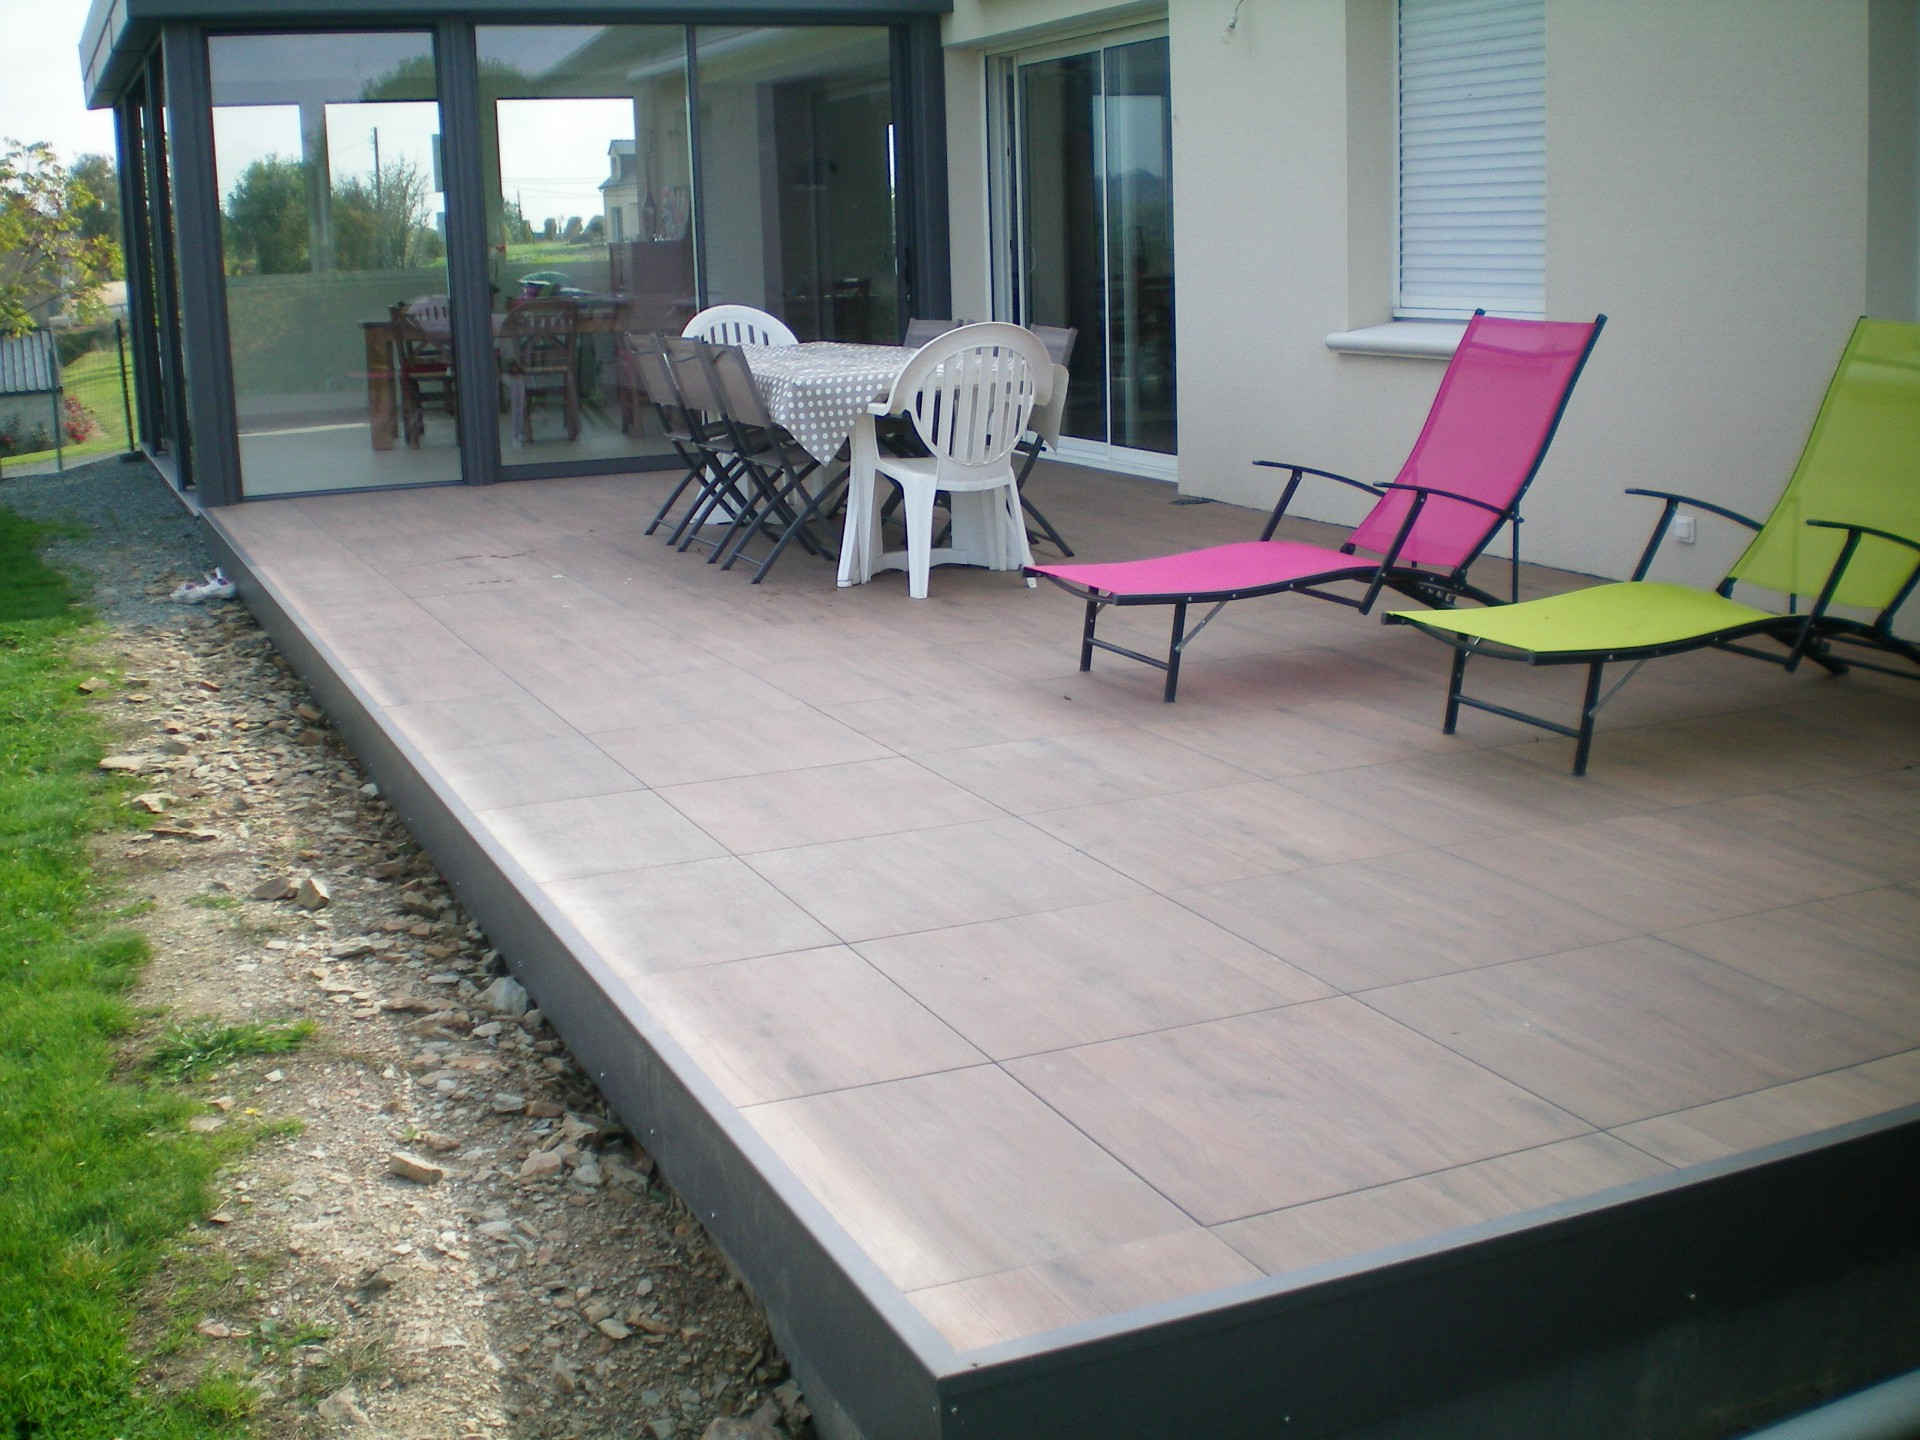 Carrelage design carrelage sur plot moderne design for Pose de carrelage sur terrasse